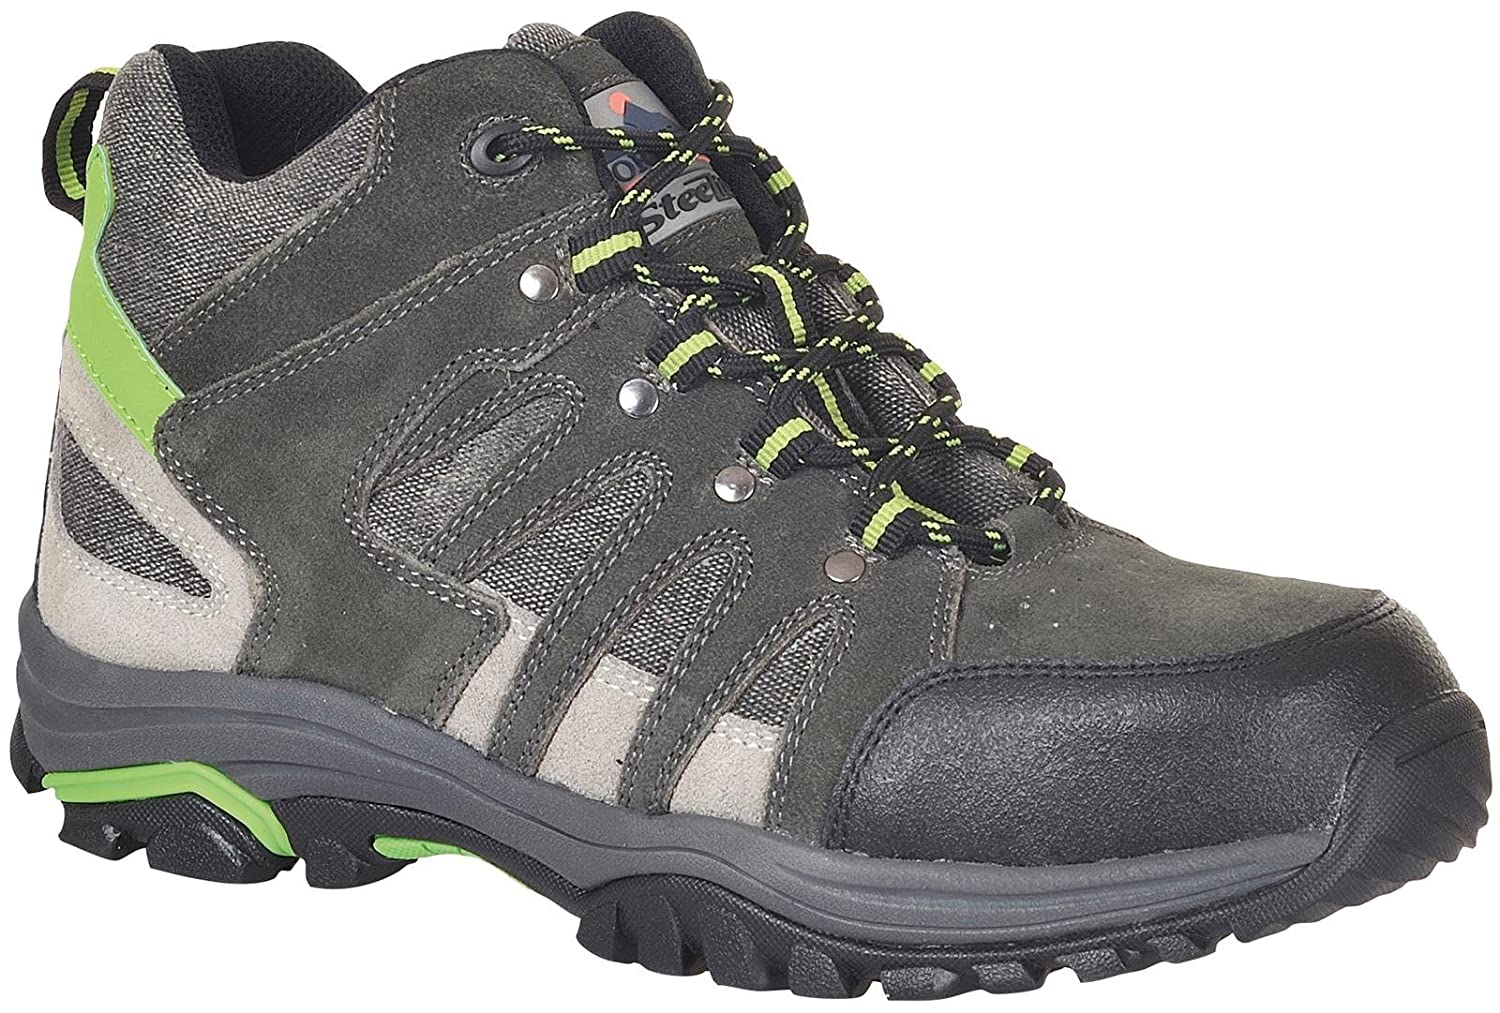 Steelite Trainer Mid Cut 39//6 talla 39 color Gris Portwest FW37